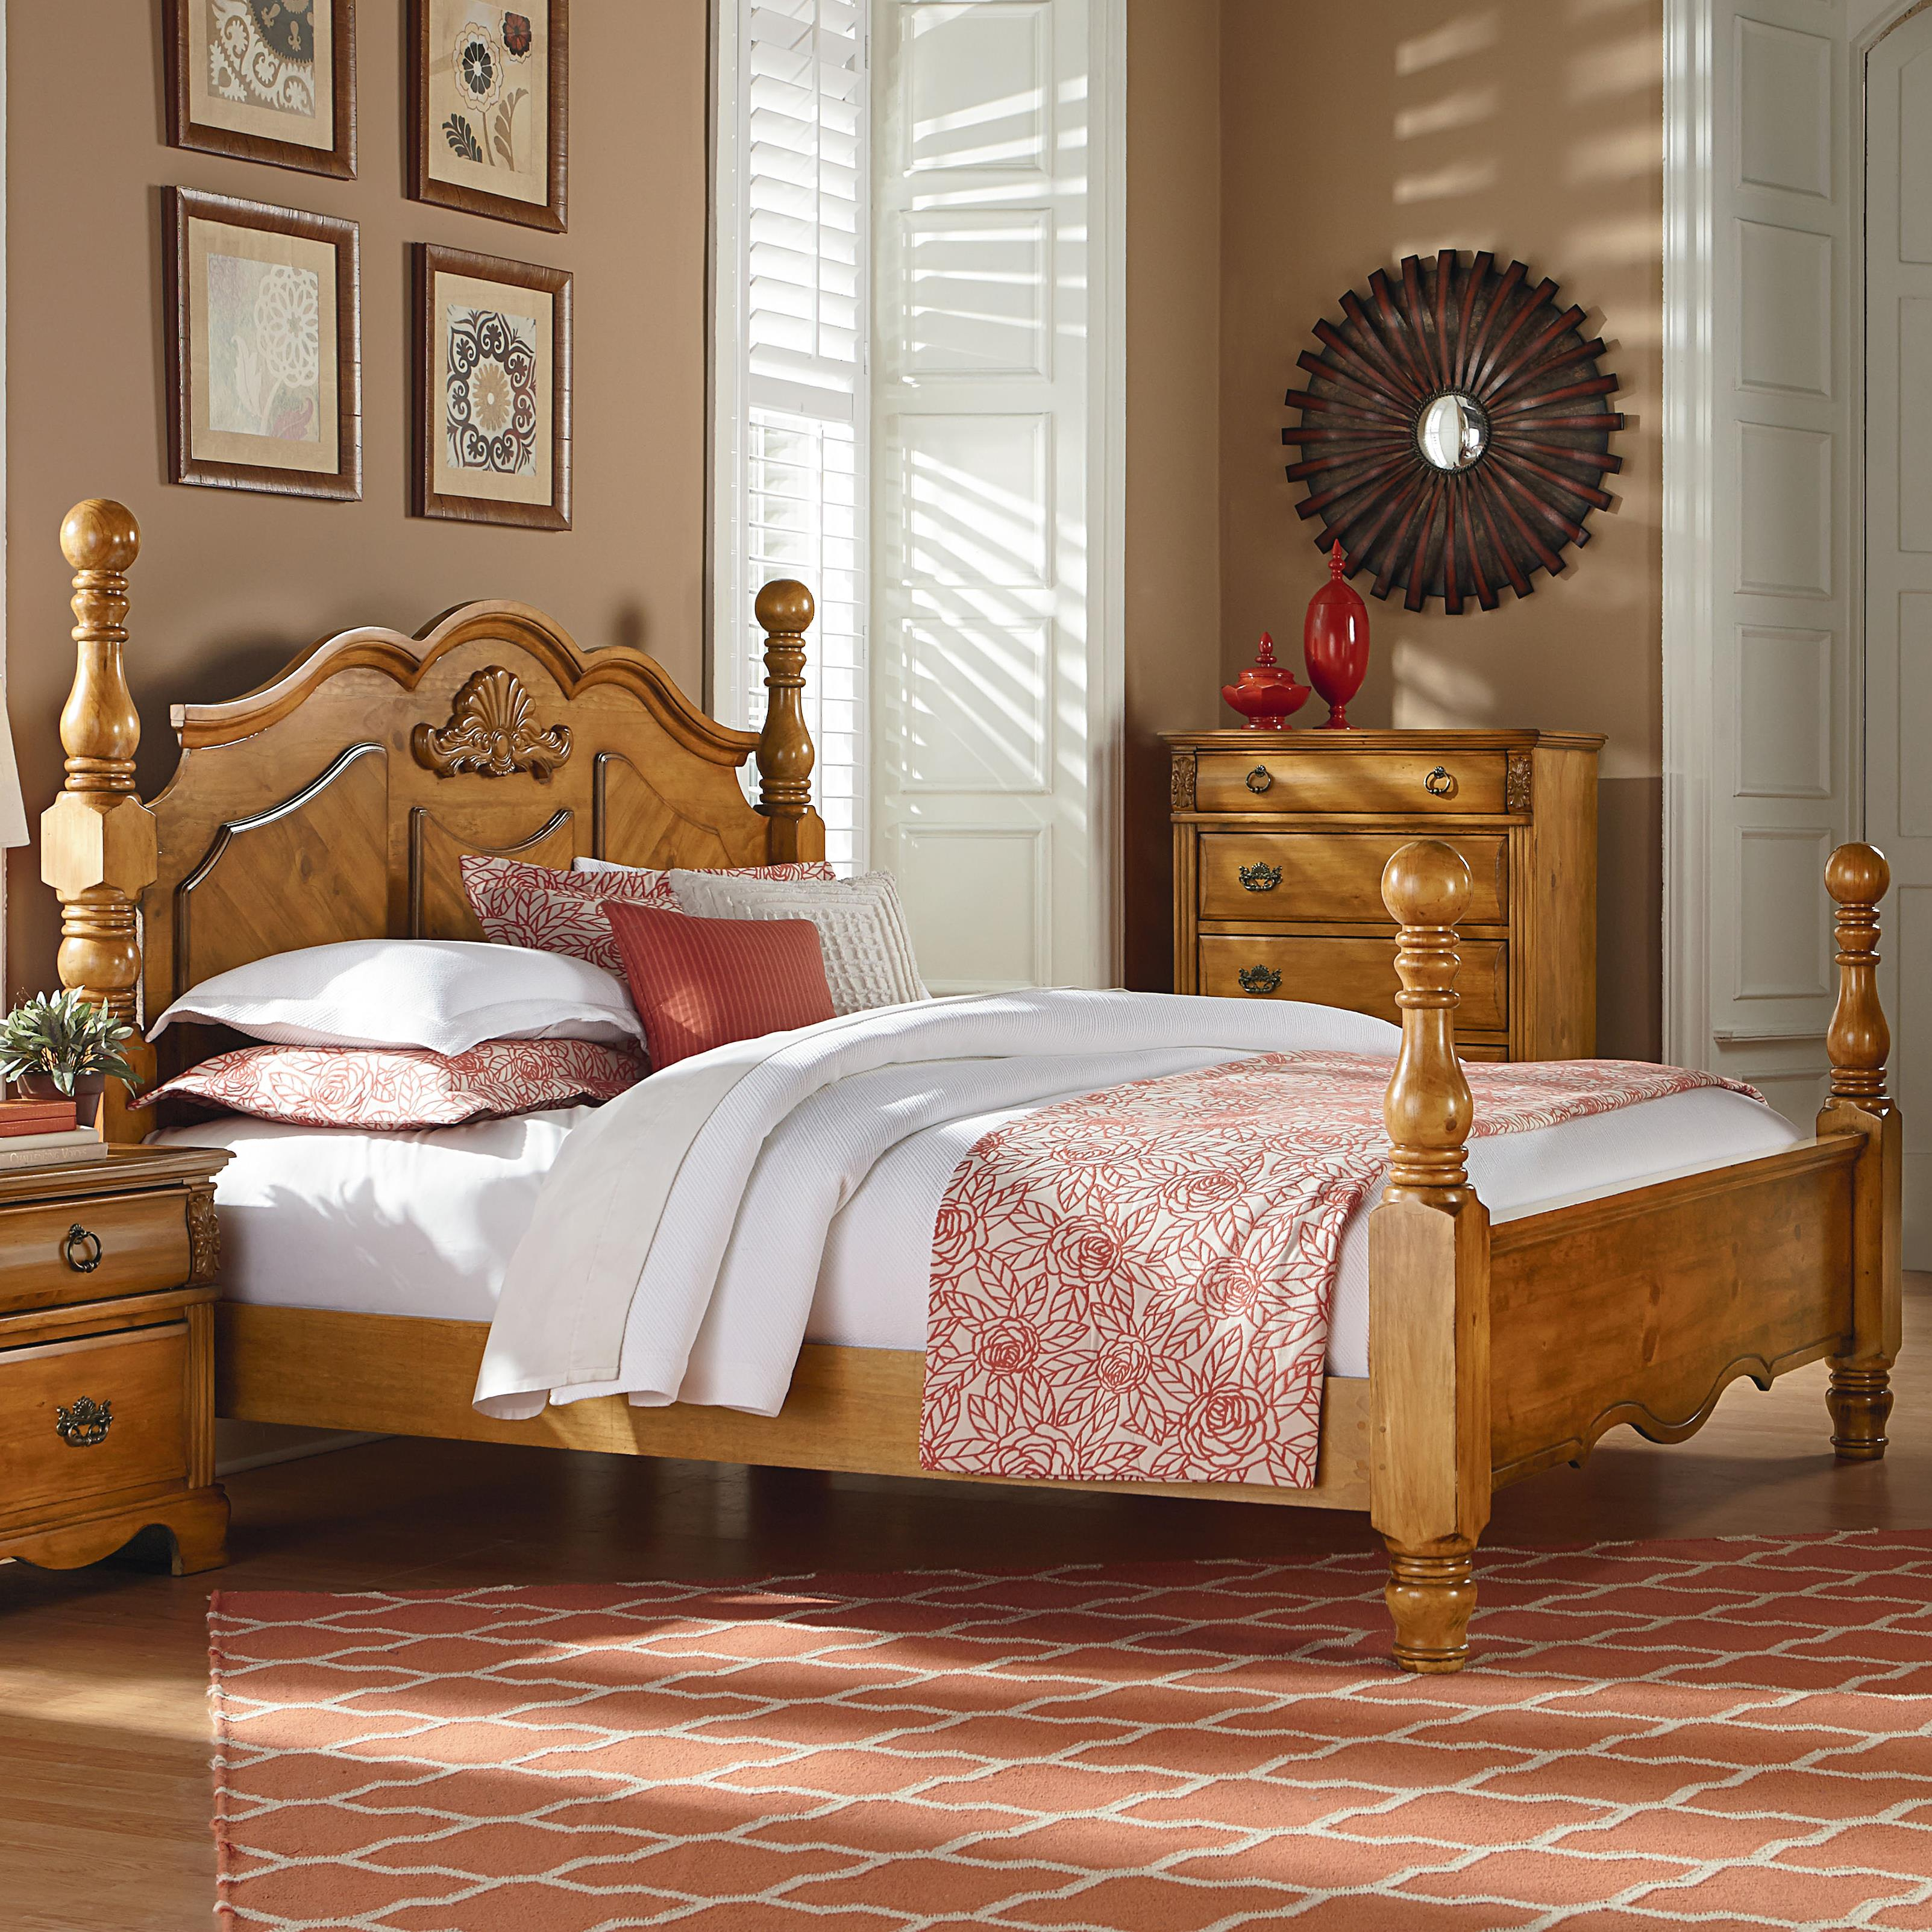 Four Poster Queen Size Bed Standard Furniture Georgetown Traditional Cannonball